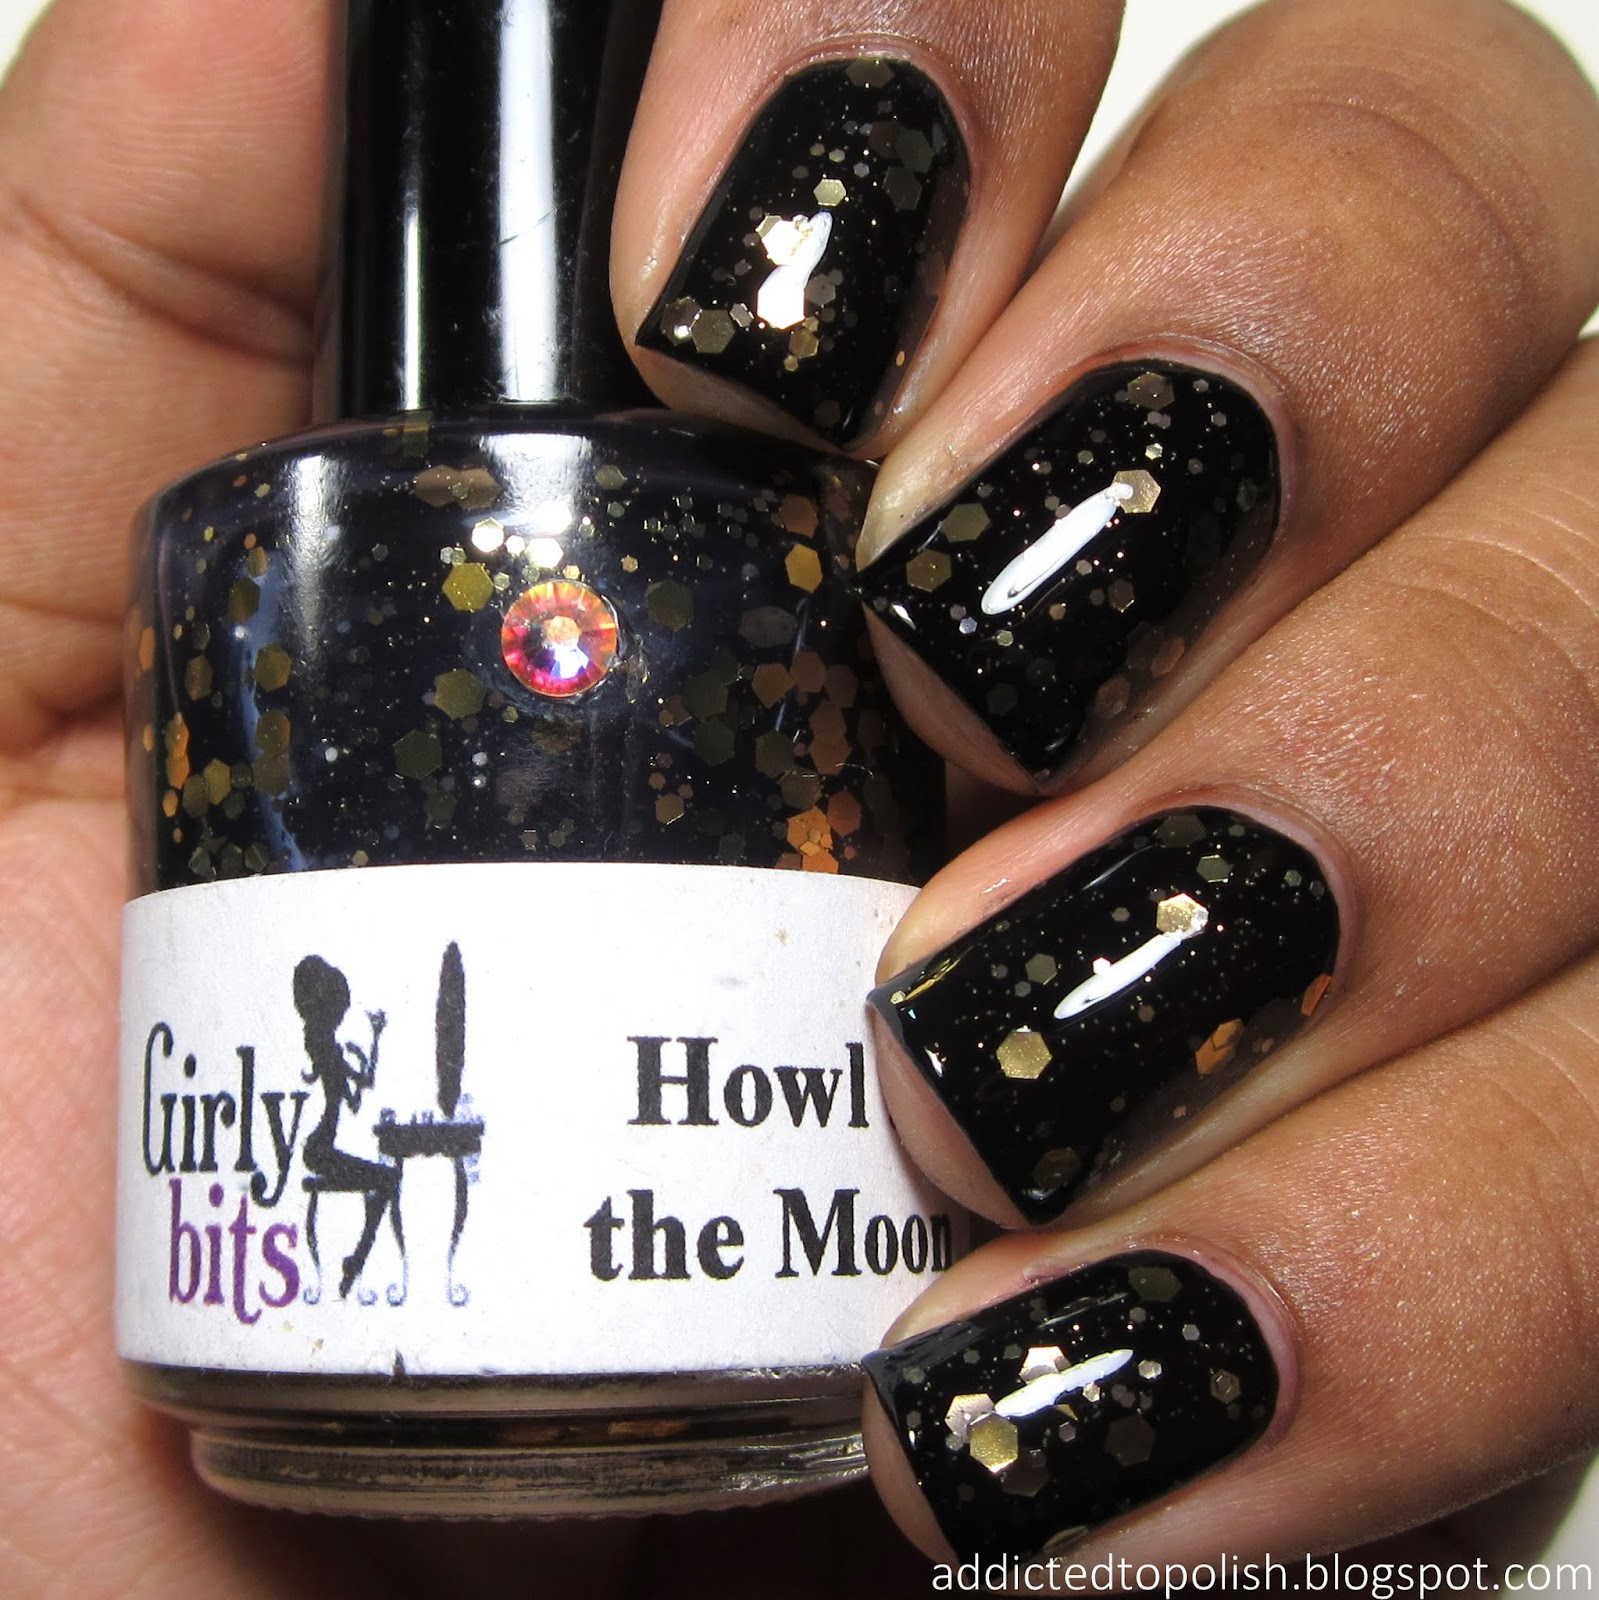 Girly-Bits-Howl-at-the-Moon